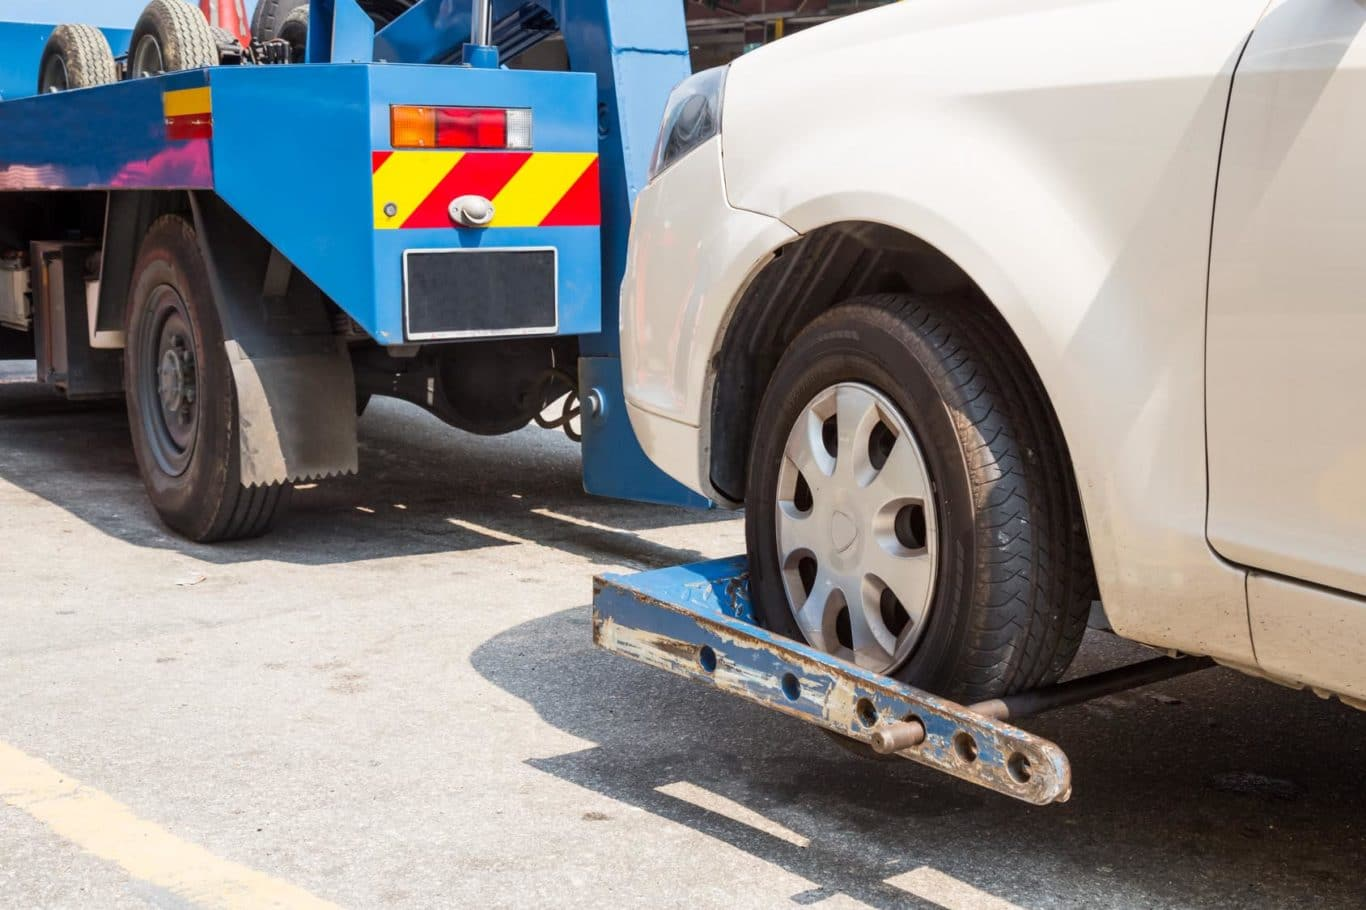 Malahide expert Breakdown Assistance services